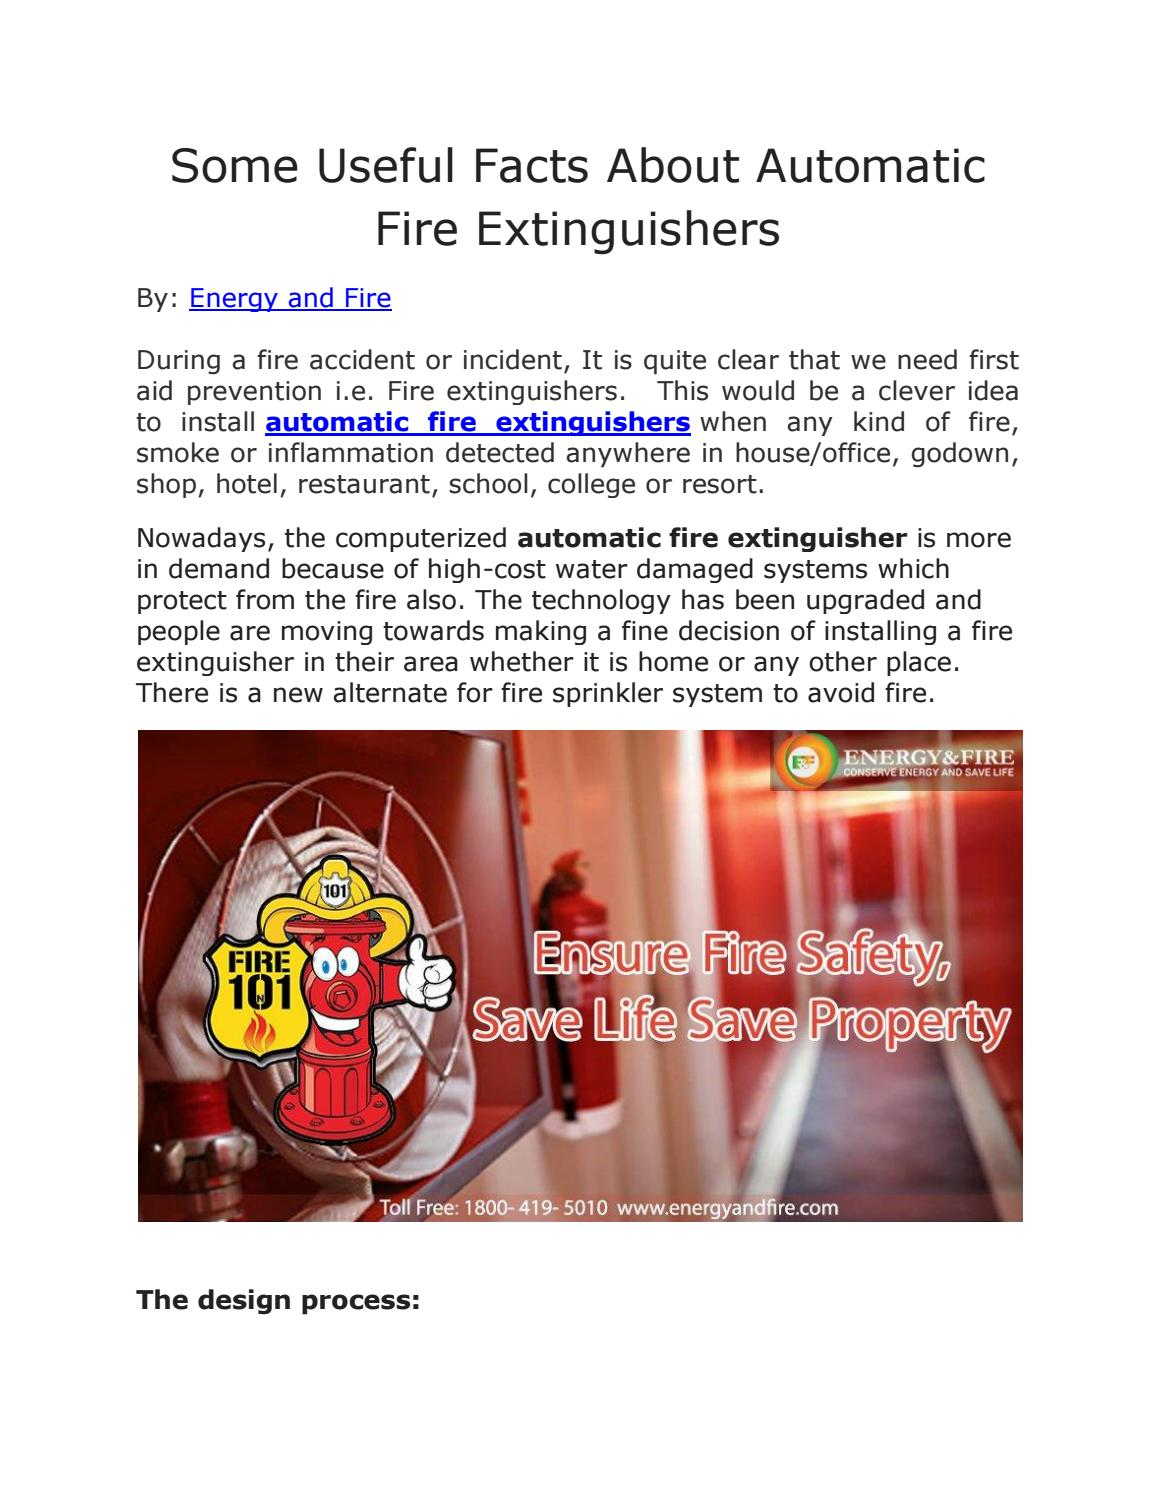 Some useful facts about automatic fire extinguishers by Energy and ...